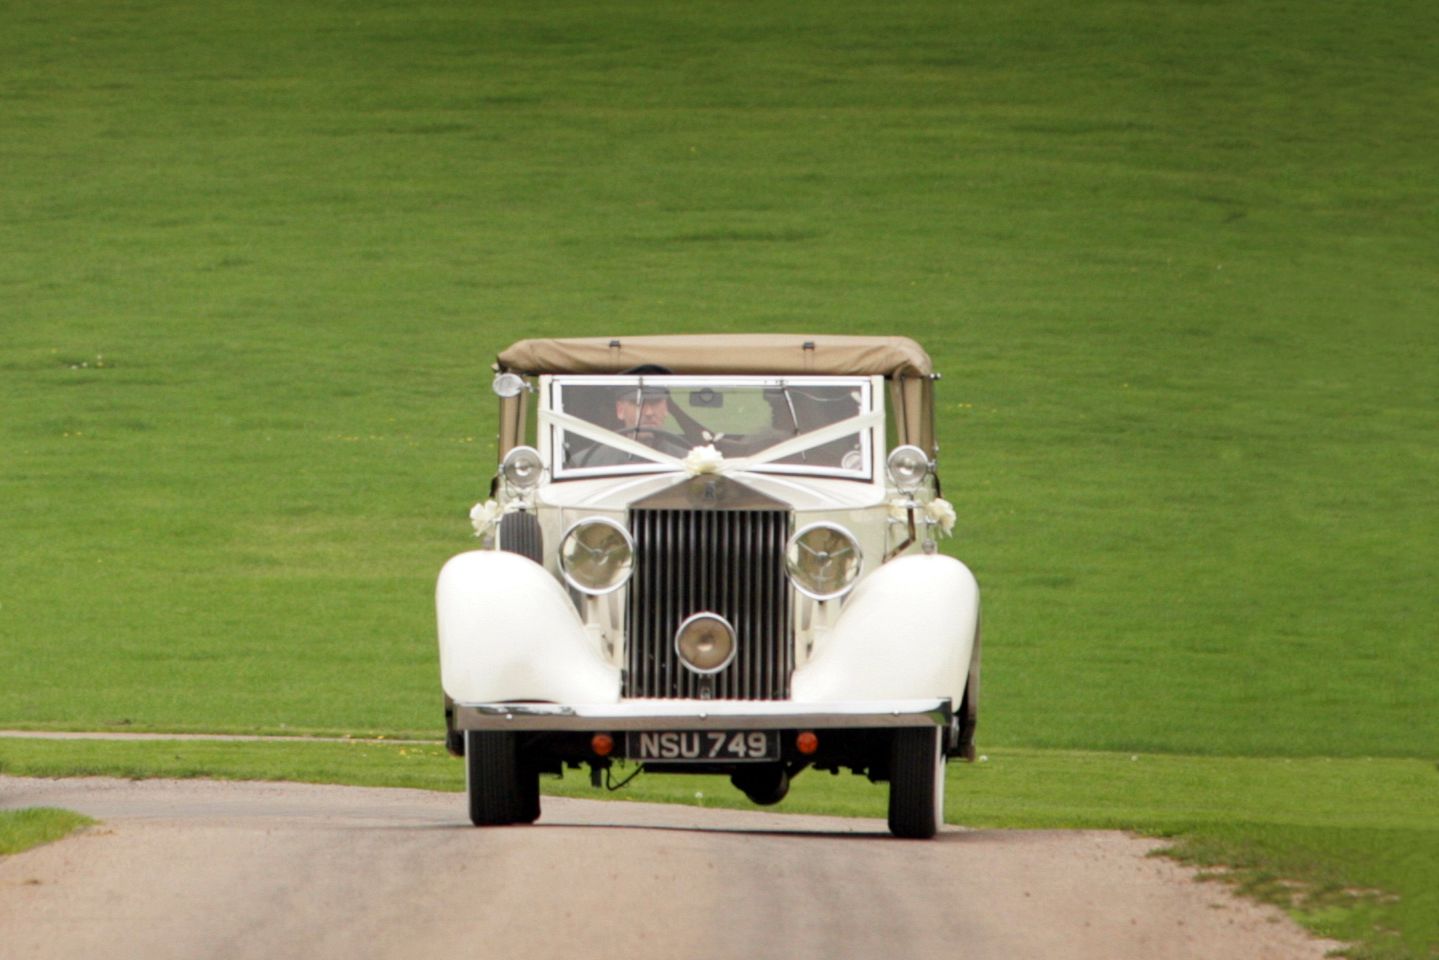 Vintage Rolls Royce coming down the drive